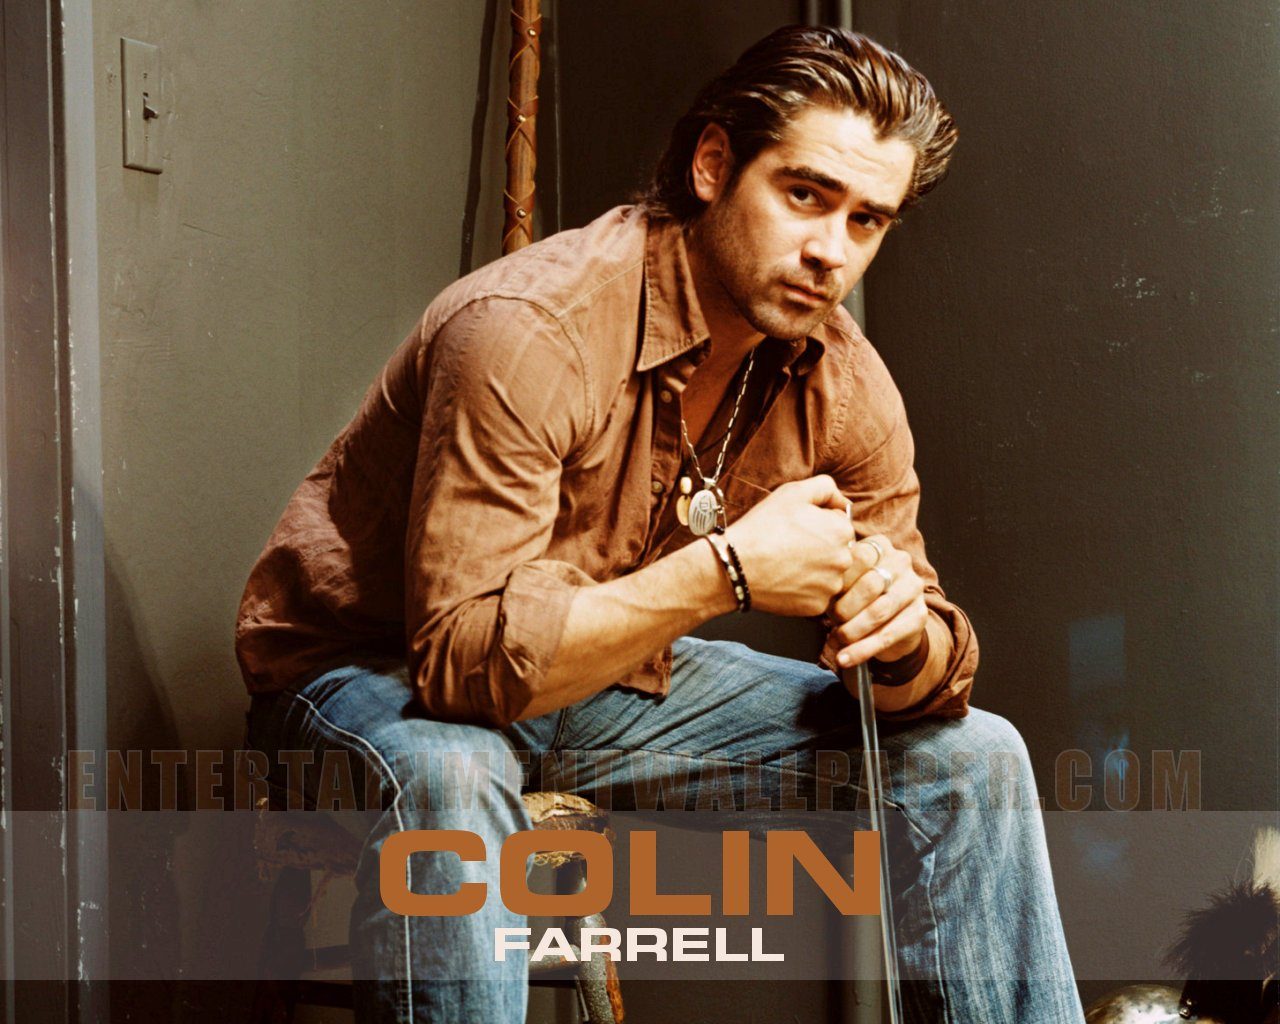 Colin Farrell images Colin Farrell wallpaper photos 1280x1024